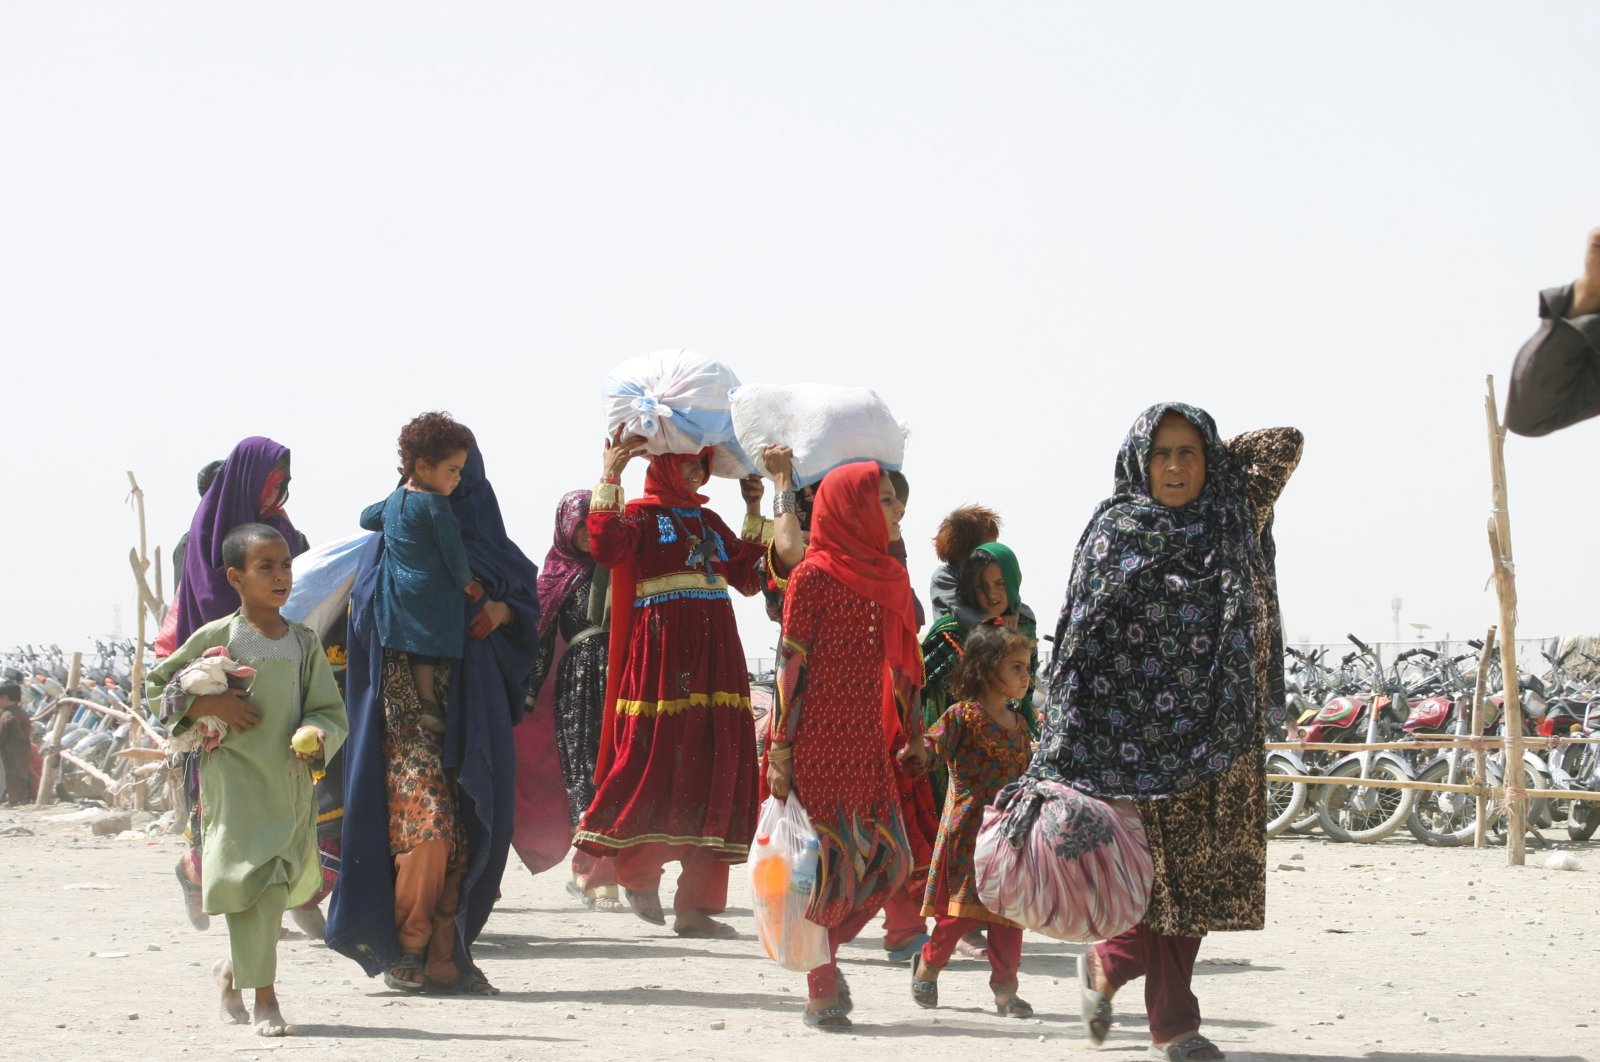 """People from Afghanistan walk with their belongings as they cross into Pakistan at the """"Friendship Gate"""" crossing point, in the Pakistan-Afghanistan border town of Chaman, Pakistan, Sept. 7, 2021. (Reuters Photo)"""